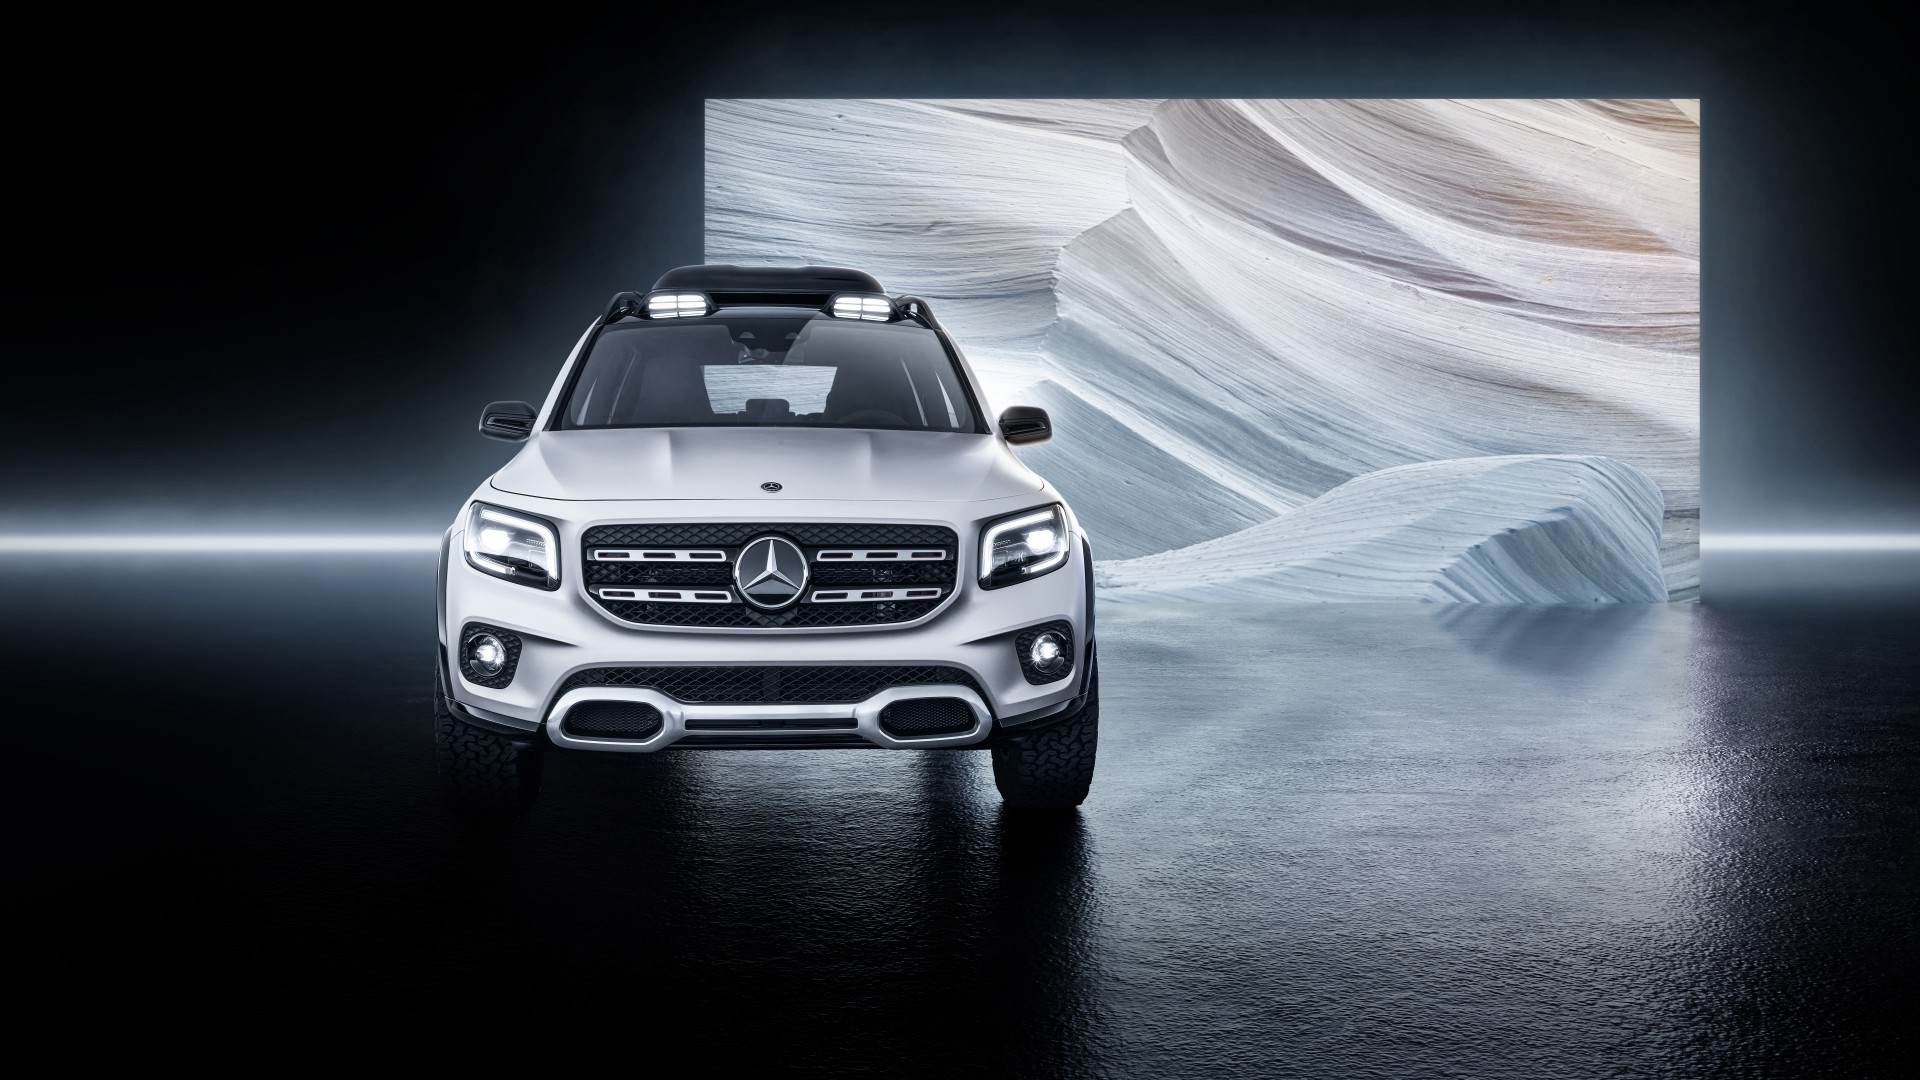 Download 1920x1080 Mercedes benz Glb Class Suv Cars White Front 1920x1080